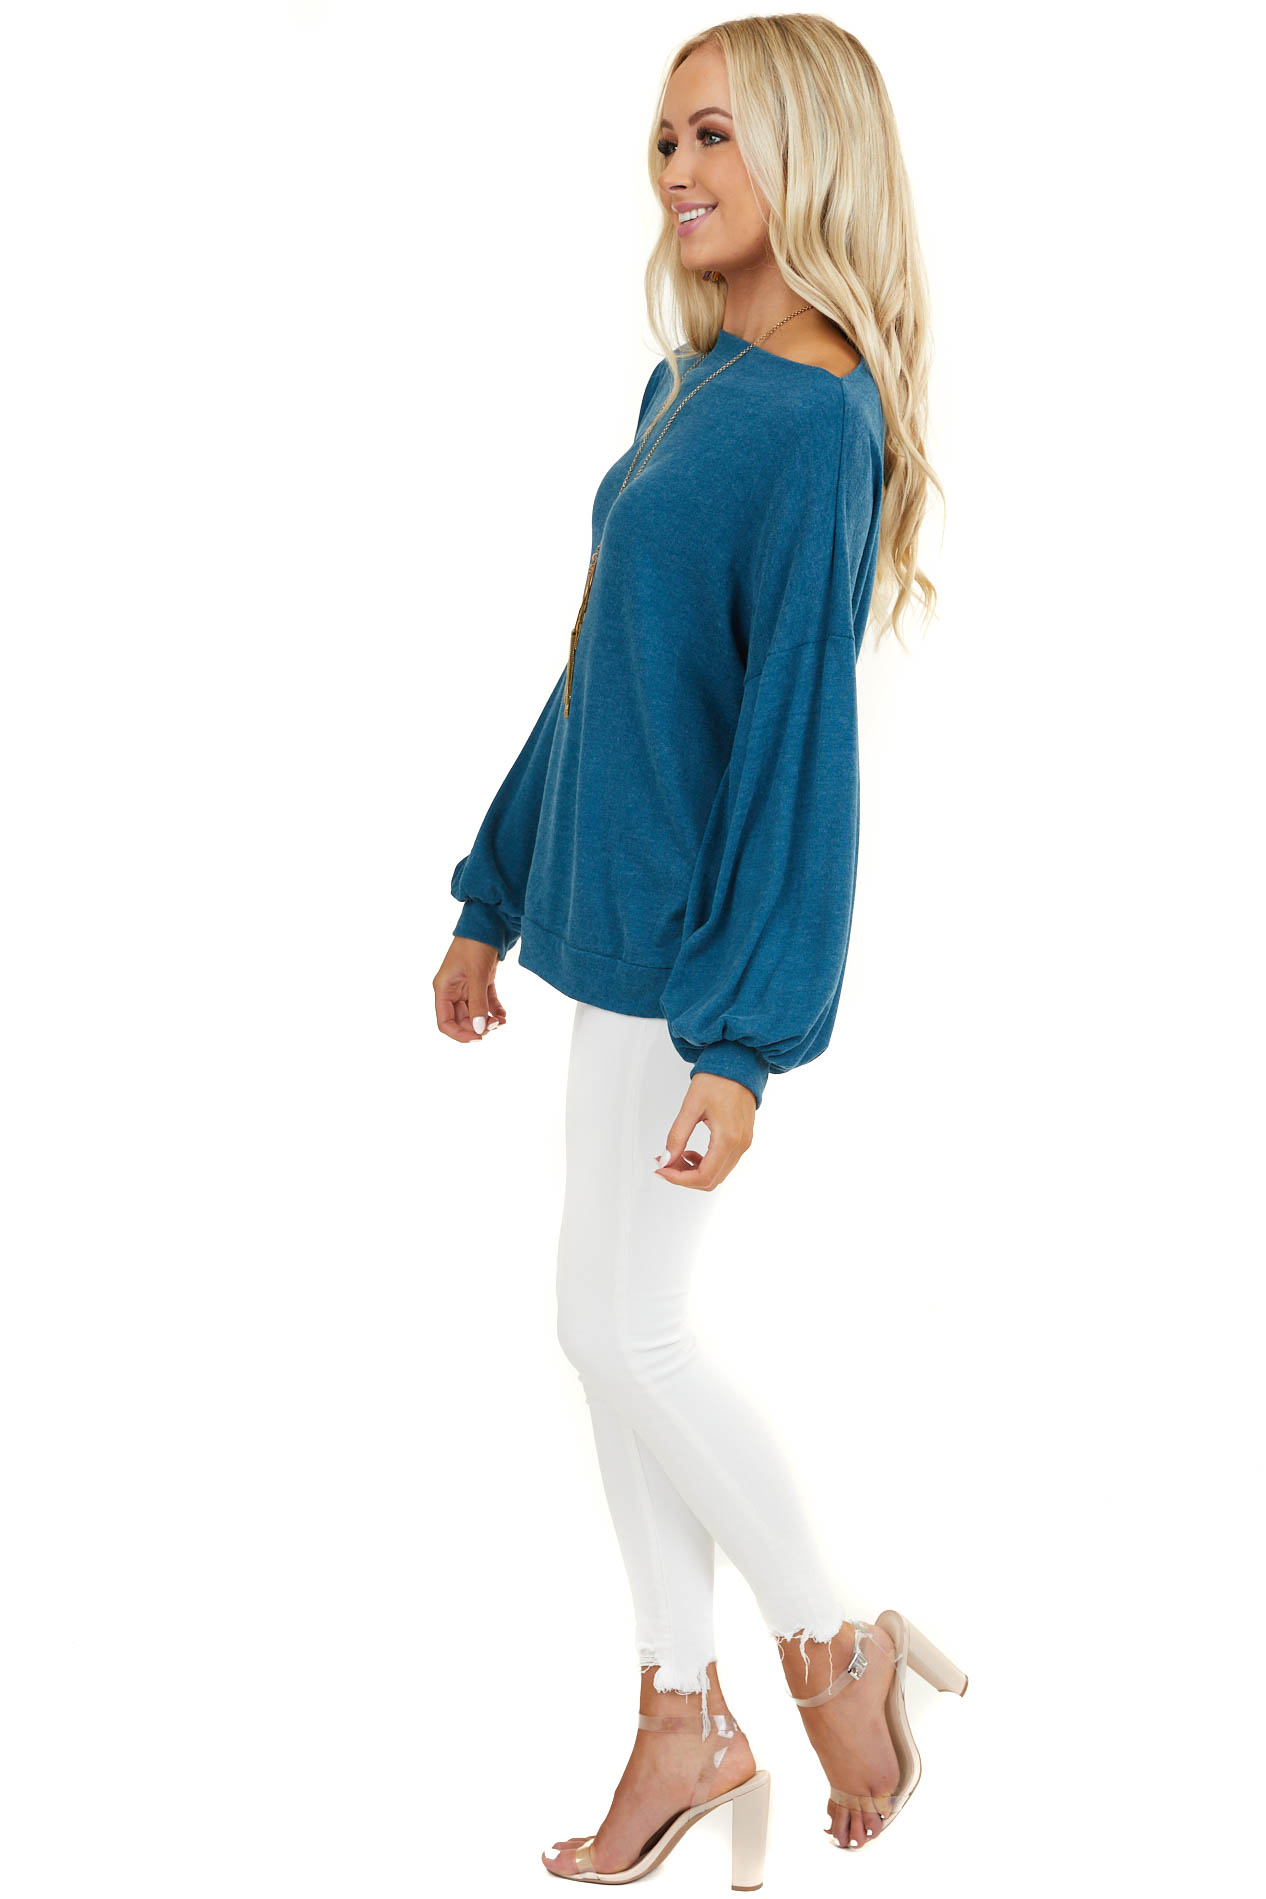 Dark Teal Off Shoulder Top with Long Bubble Sleeves